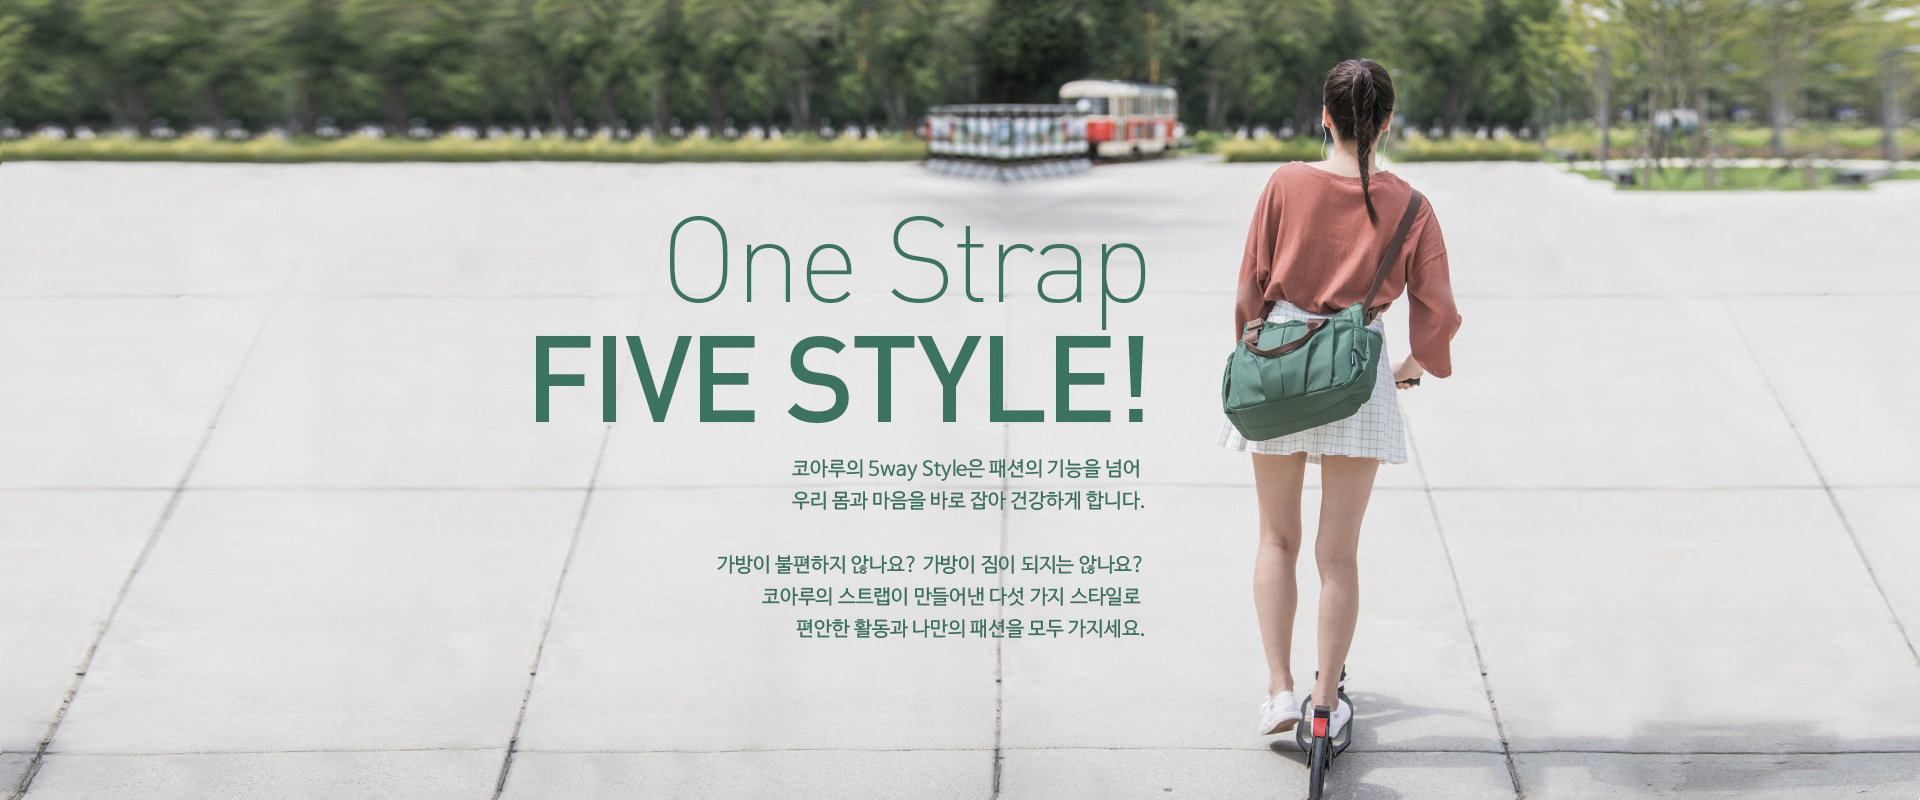 One Strap five style!